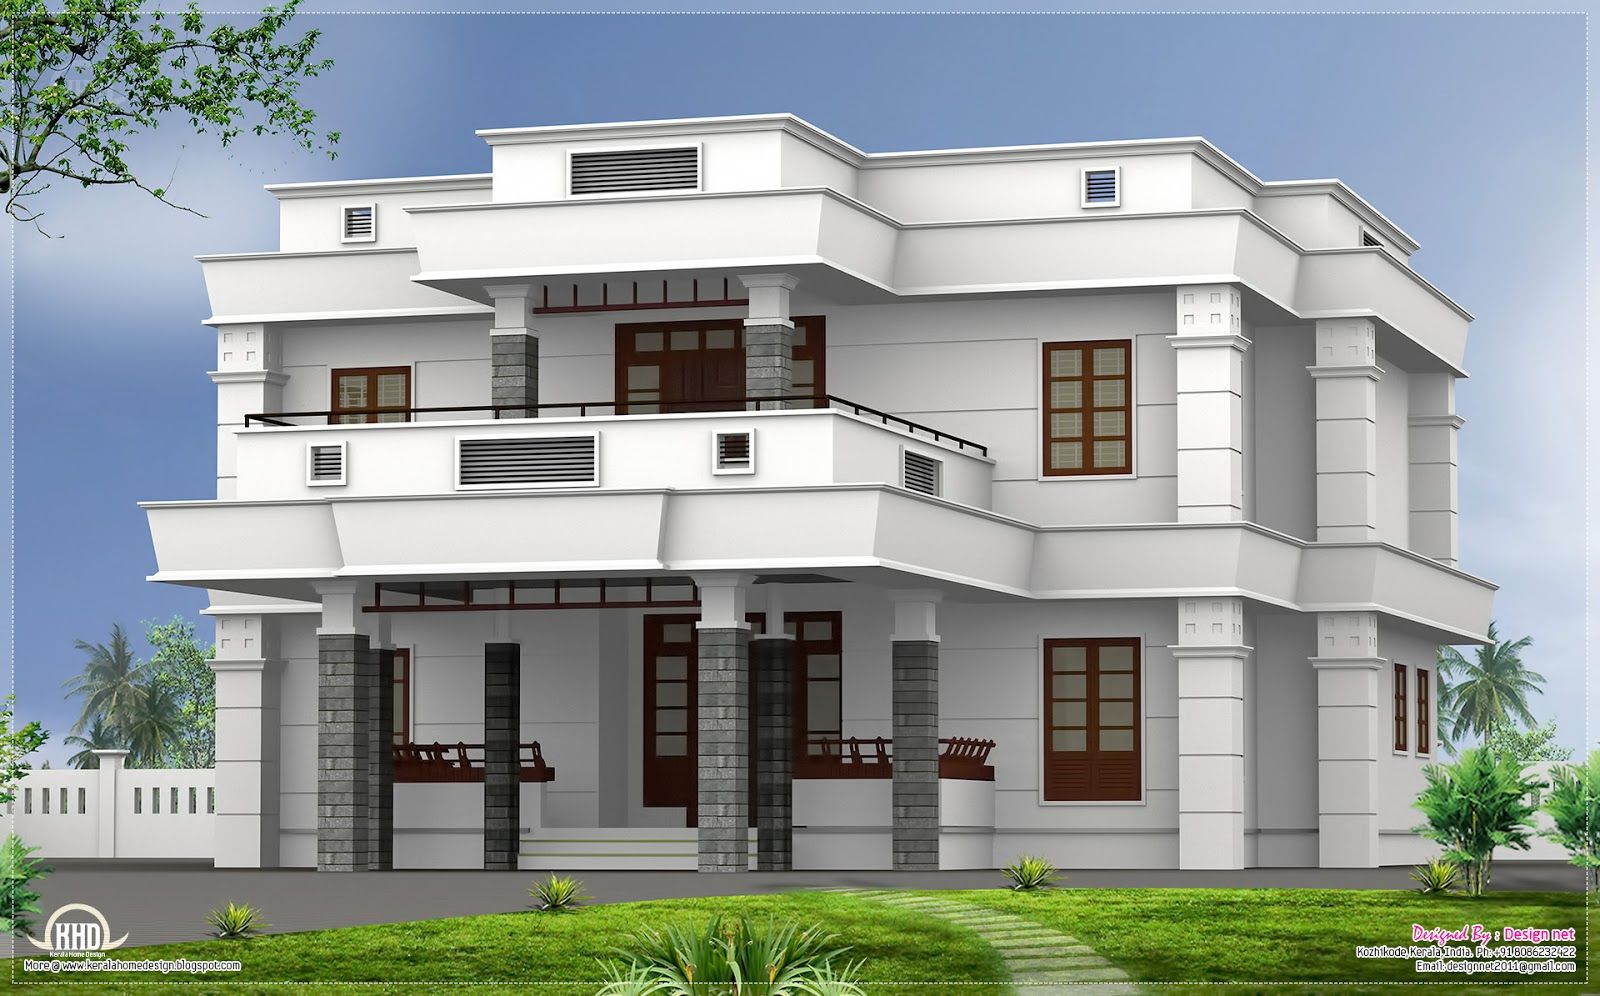 Flat roof homes designs bhk modern flat roof house for New kerala house plans with front elevation